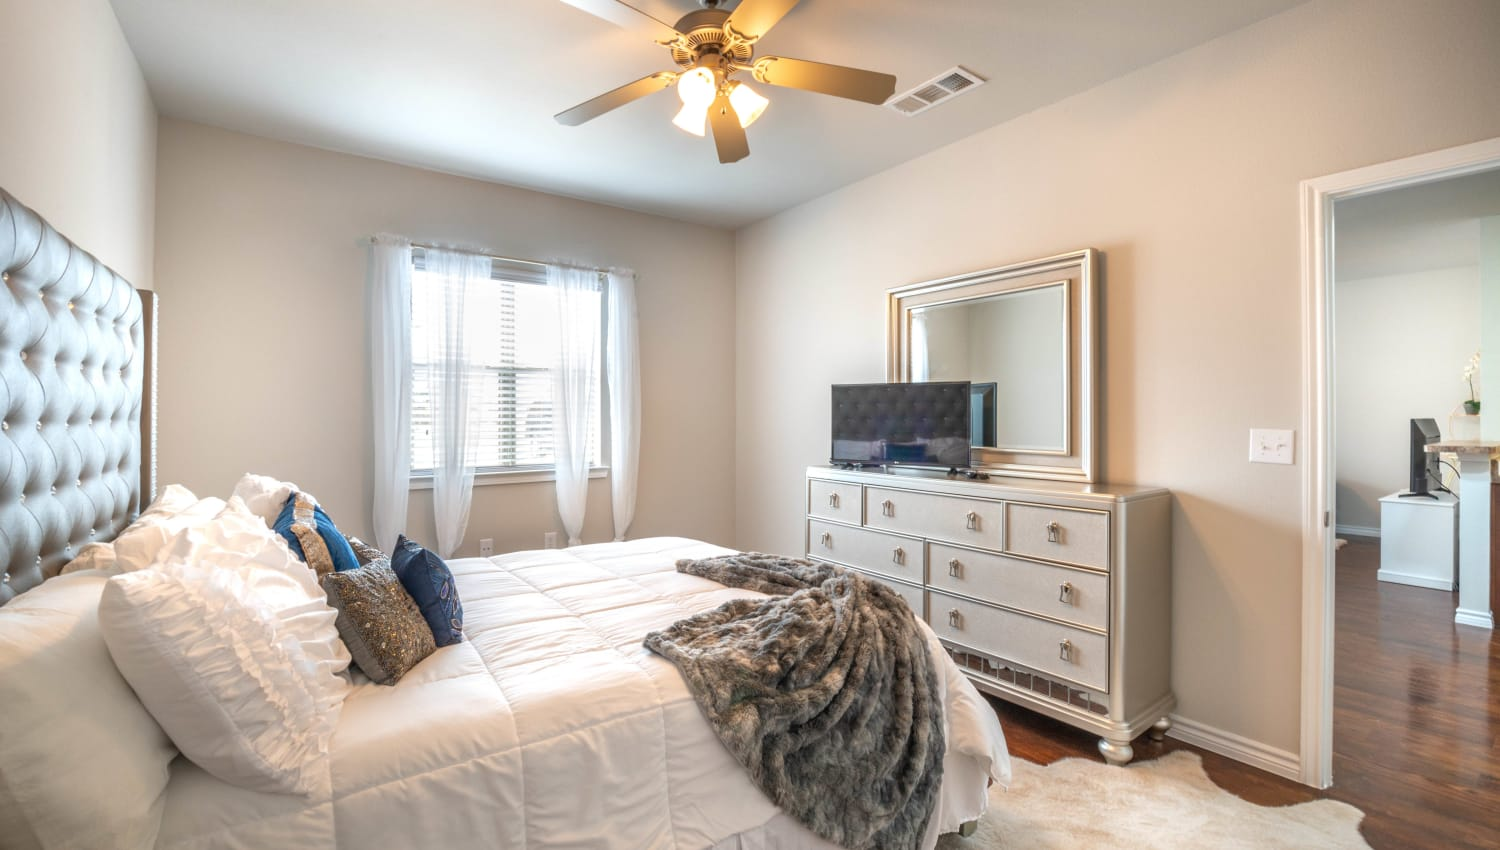 Plush carpeting and a ceiling fan in a model apartment's bedroom at Olympus Willow Park in Willow Park, Texas